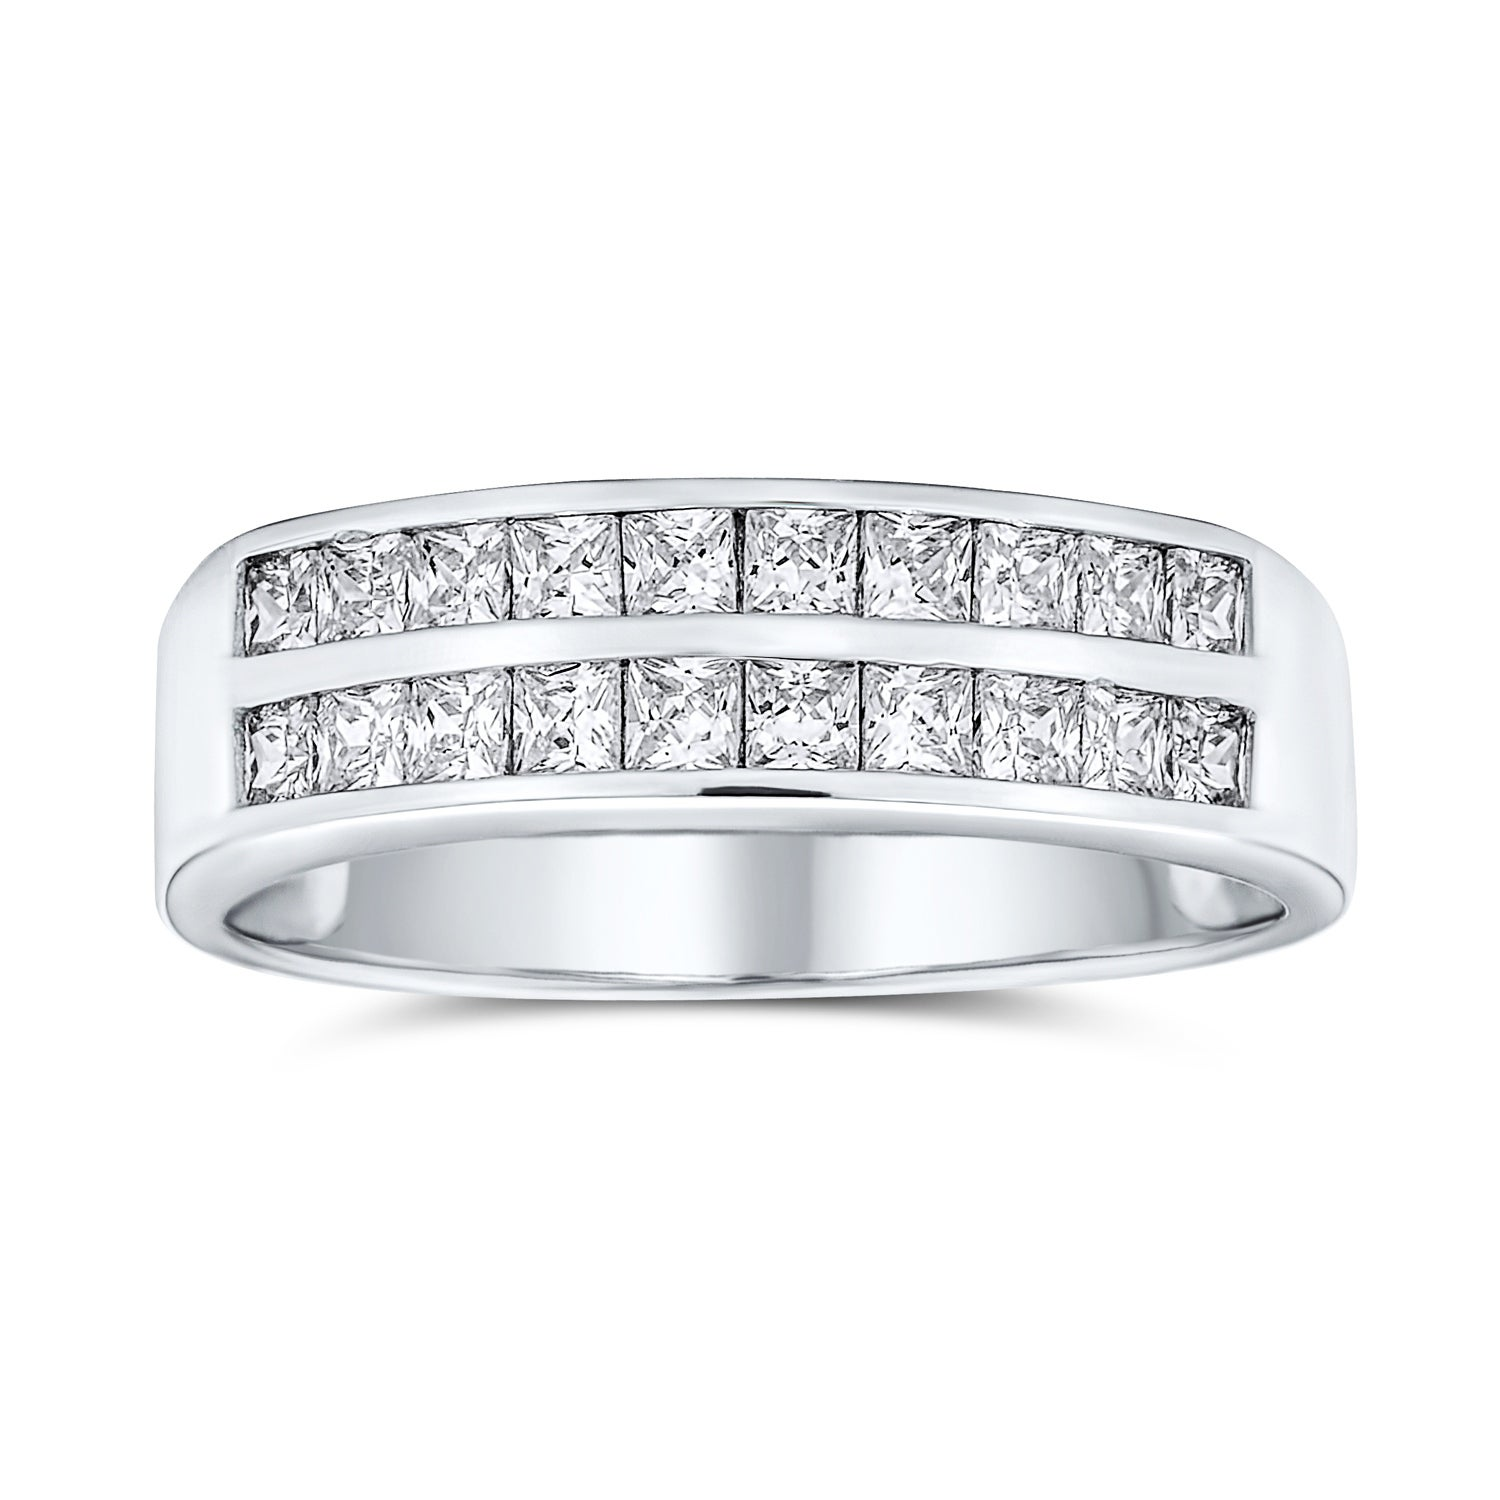 Channel Set Silver Wedding Band Ring Channel Setting Stackable Band 925 Sterling Silver with Round CZ Diamond Simulants Full Eternity Band